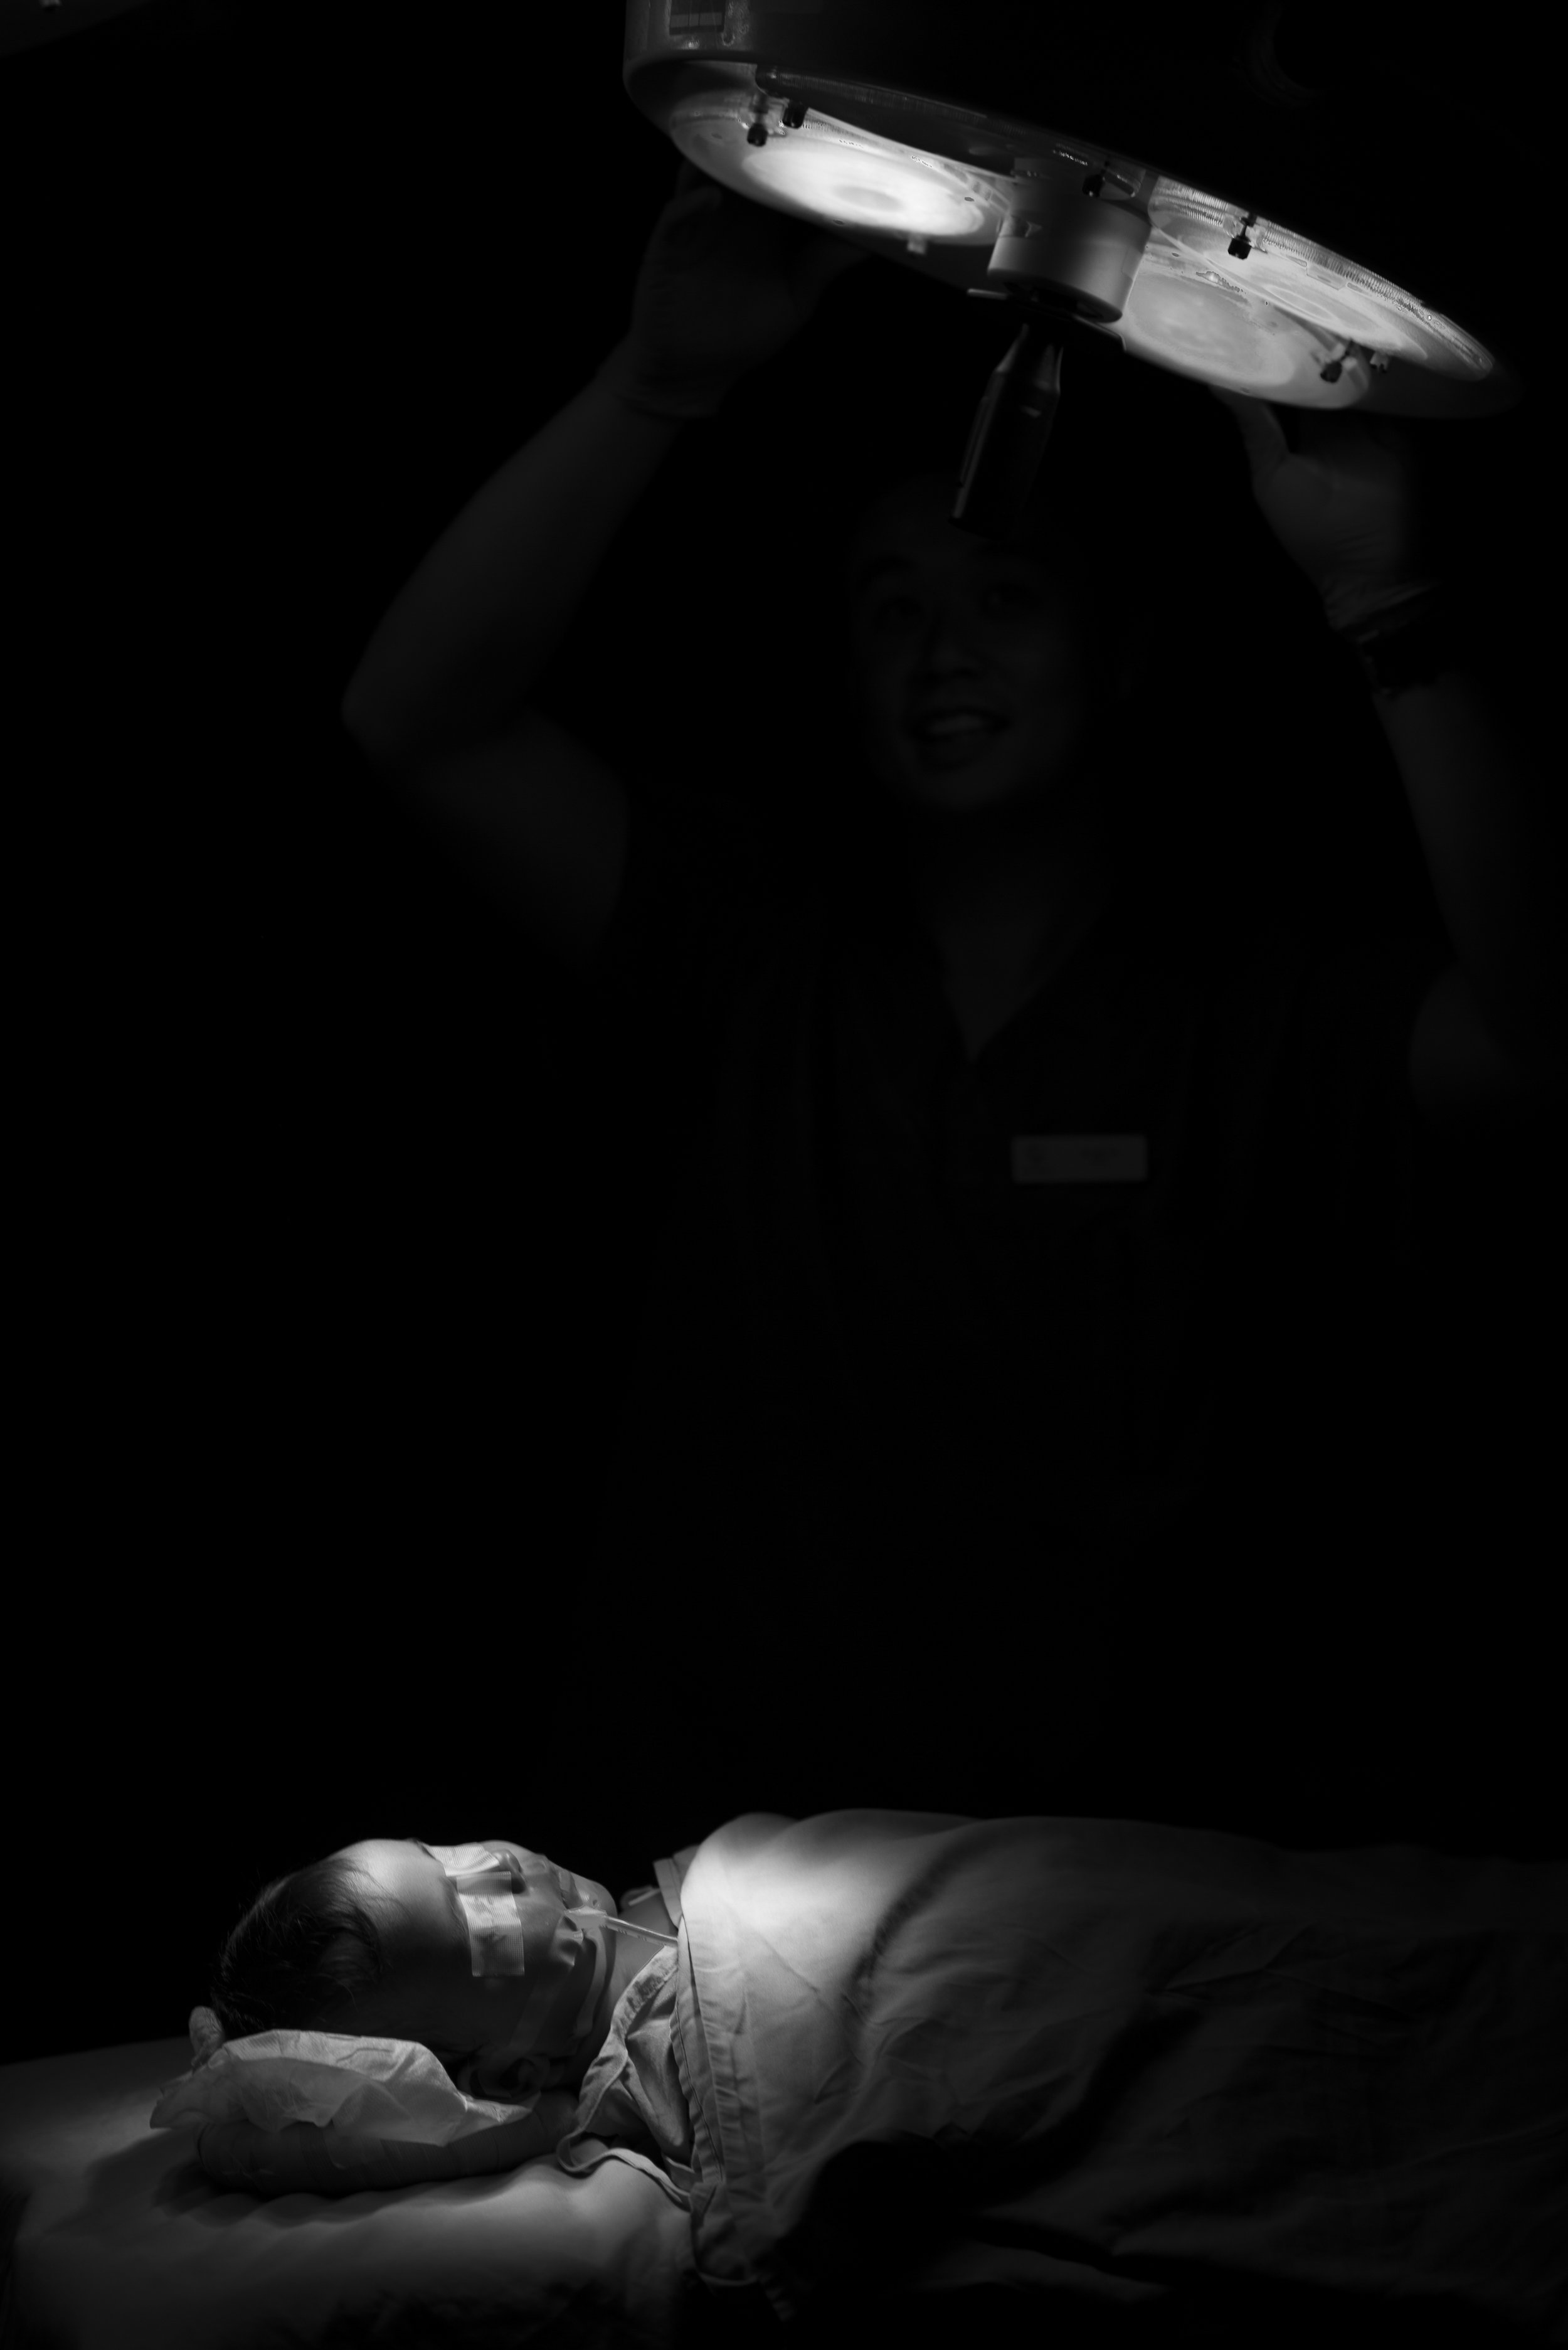 Tonga.  A young boy lies asleep in the dark waiting for surgery, whilst the team prepares out of frame. In this moment, the only sound is that of his heartbeat on the monitor. The 'stage' of a theatre is one I've become familar over the years, but I never loose the feeling of complete trust another human hands over to Doctor in this moment.